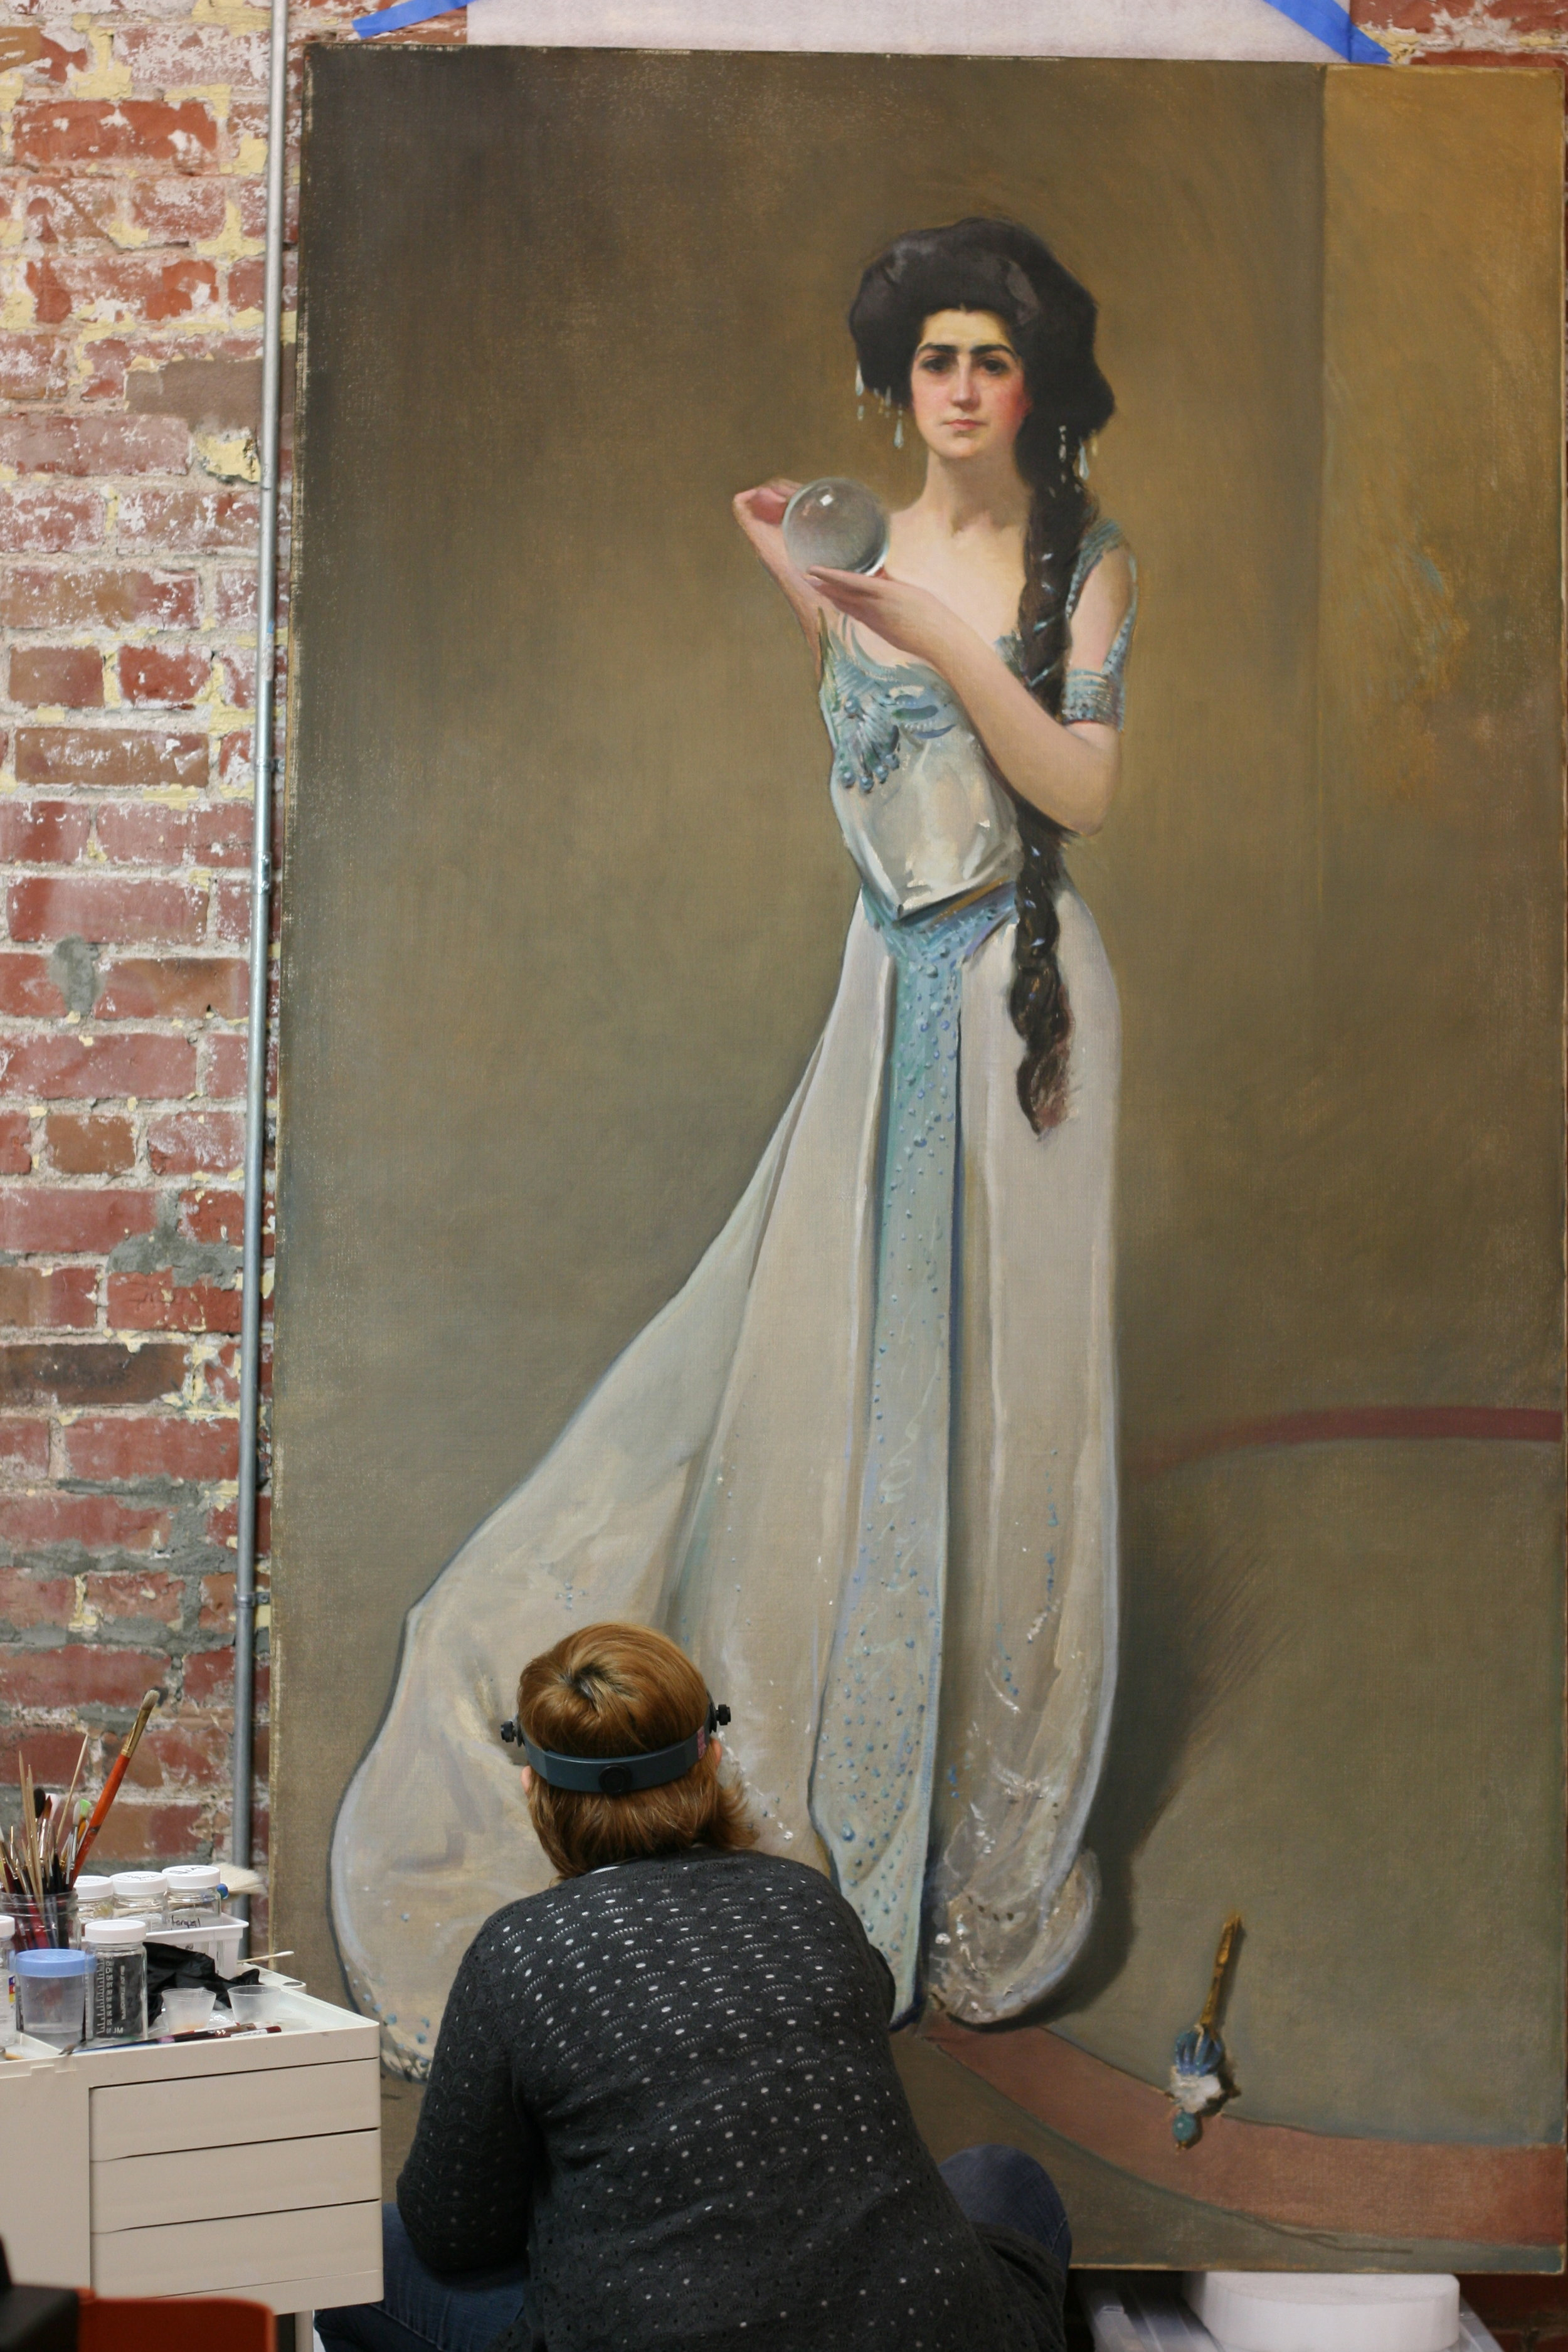 """Stephanie treats a large 19th century portrait titled """"Phoebe of the Titans, Portrait of Katherine Mackay"""" by John White Alexander. from the W. M. Kick Earth Science and Mineral Engineering Museum, Nevada."""